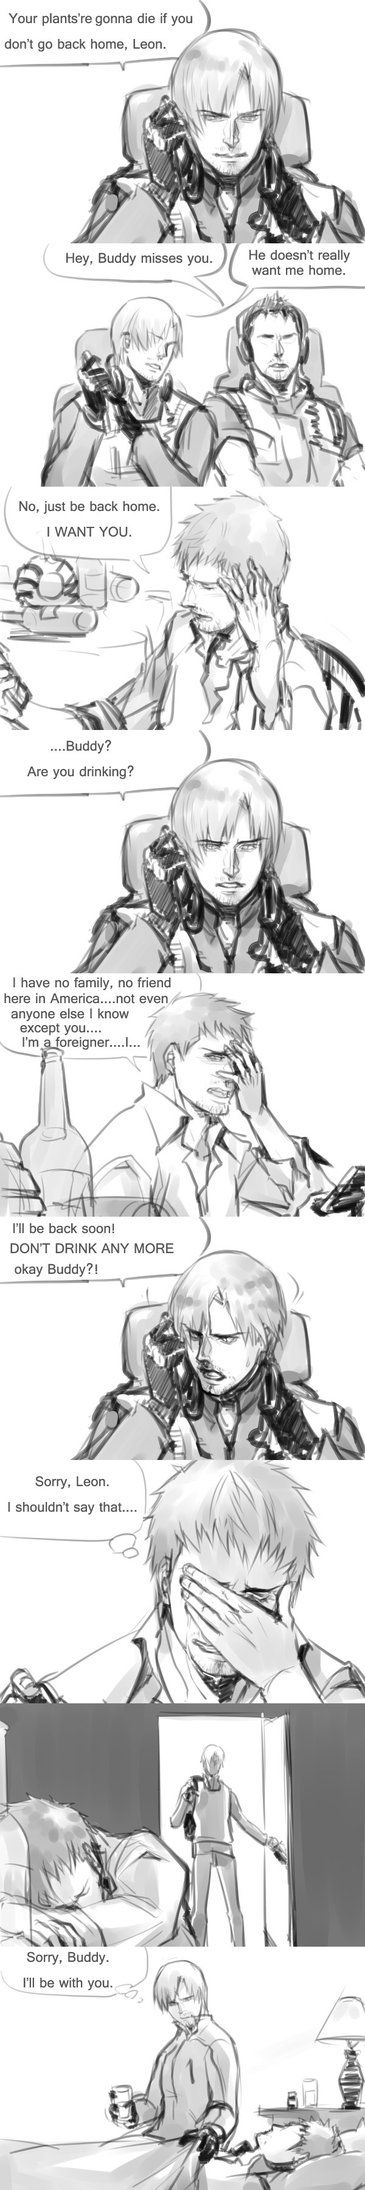 [Resident Evil:Damnation]Leon/Buddy small comics.. by eilinna on DeviantArt